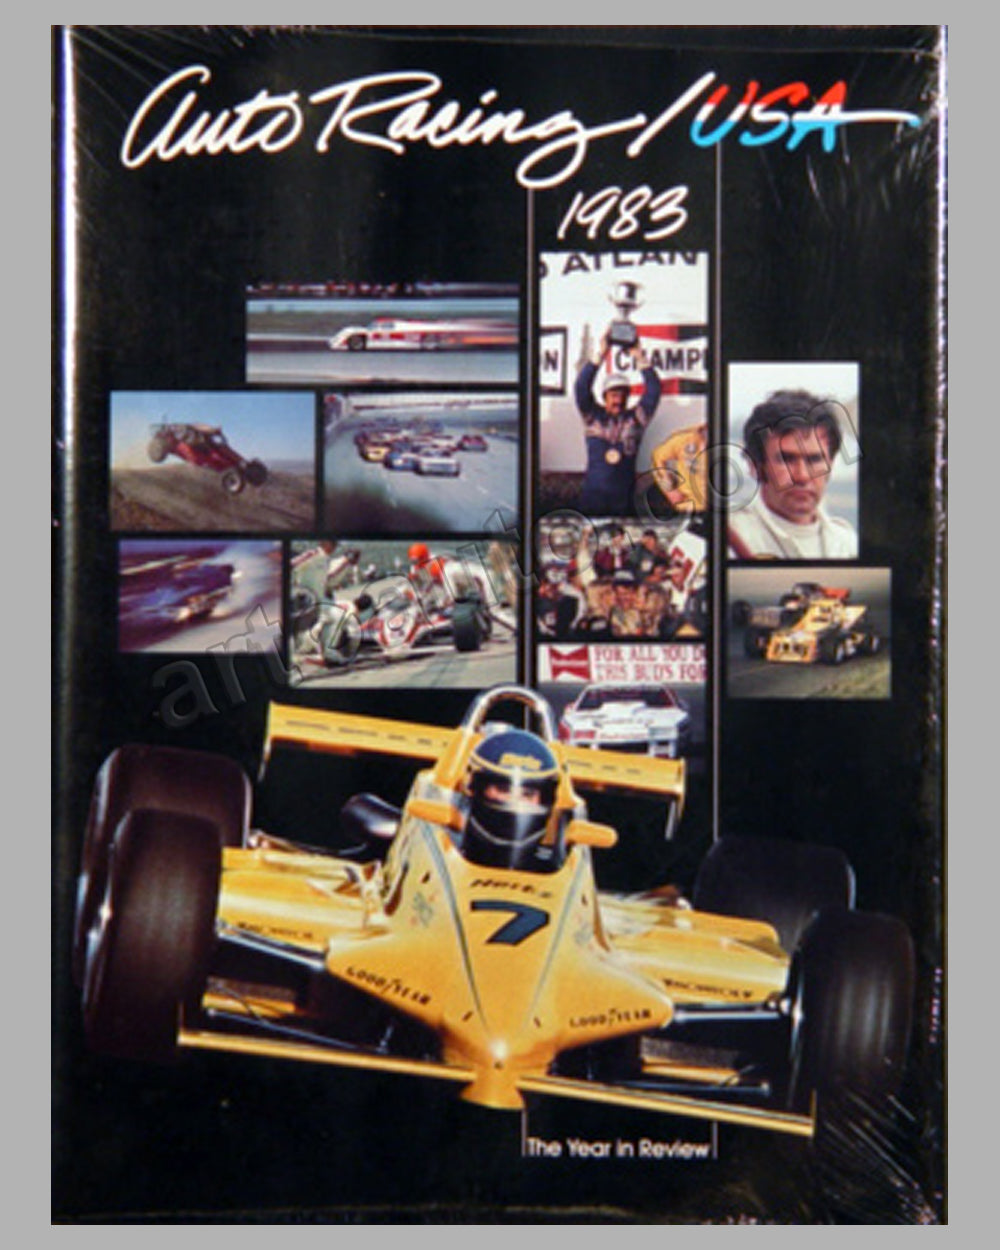 Auto Racing USA - 1983 year book by L. A. Taylor